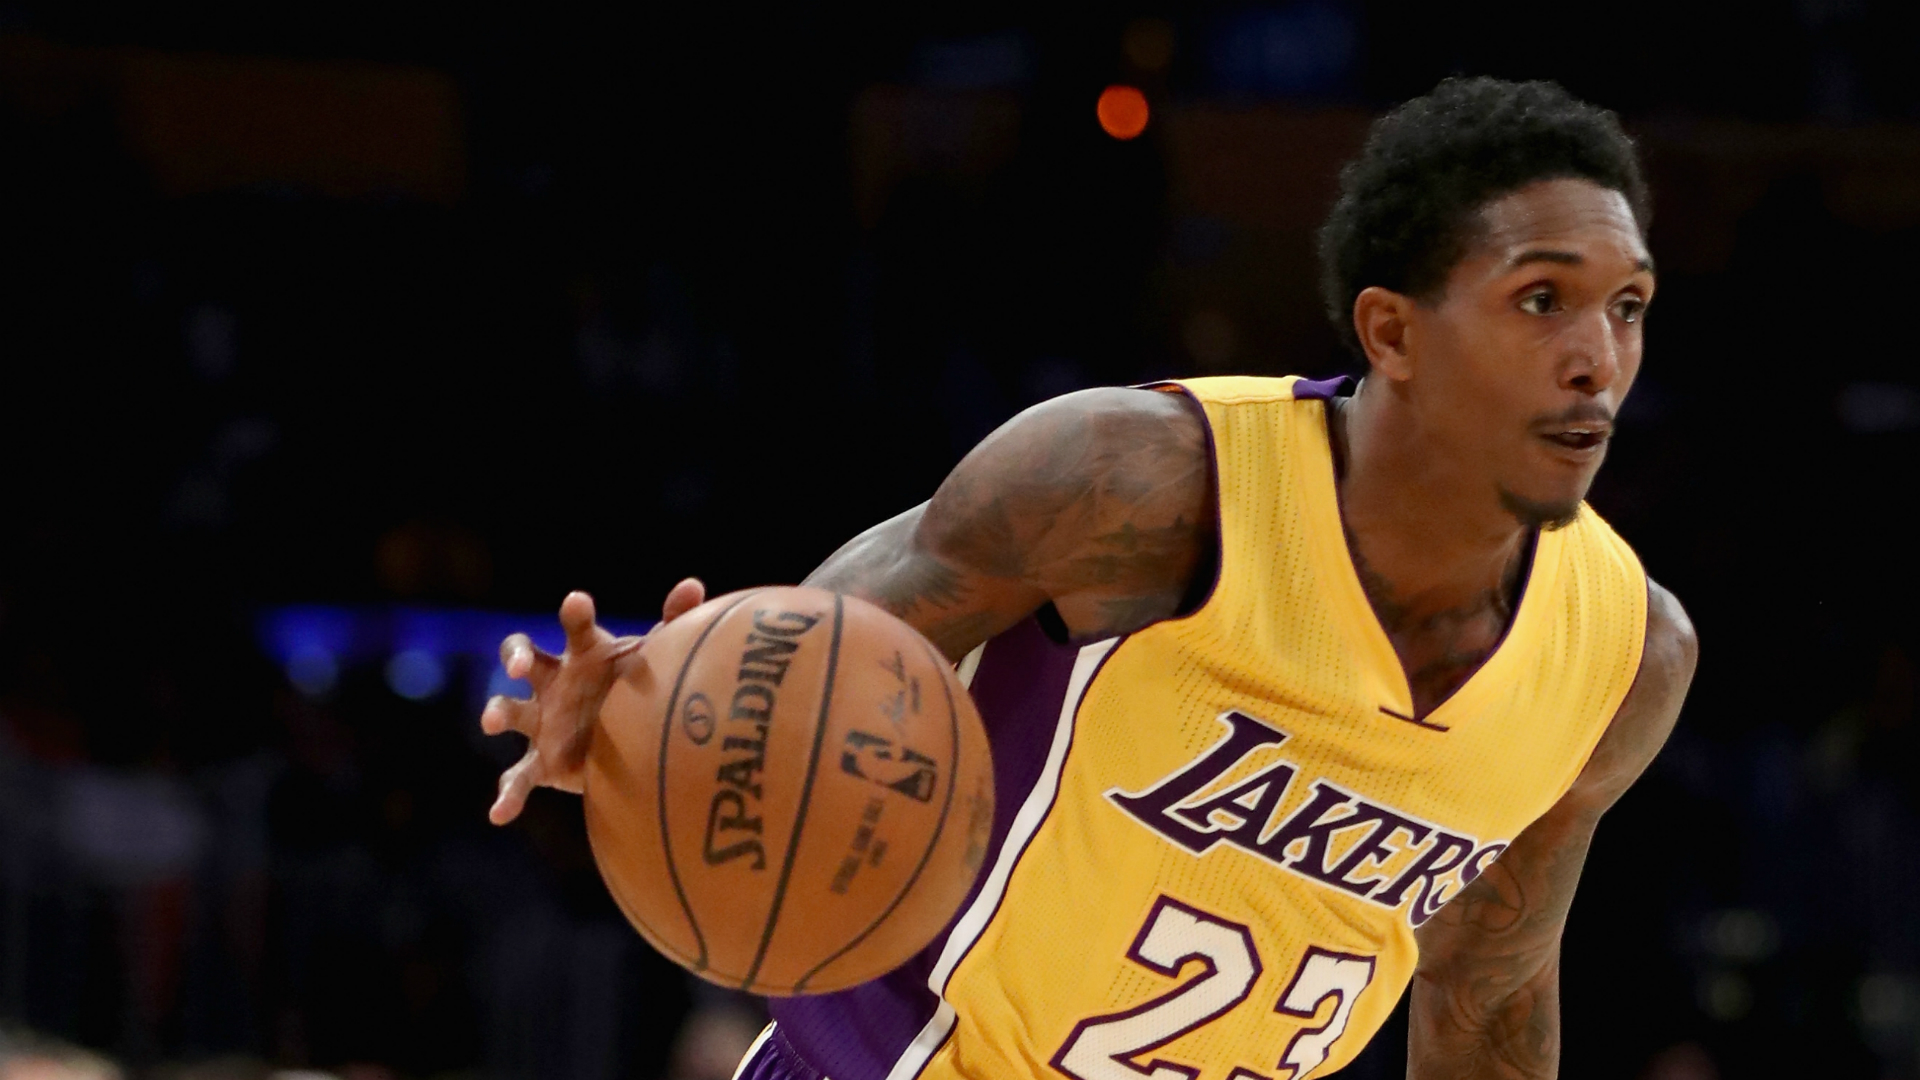 Lou-williams-los-angeles-lakers-v-dallas-mavericks-08112016_1p5bs1qo11y7z18paci5gg9cec